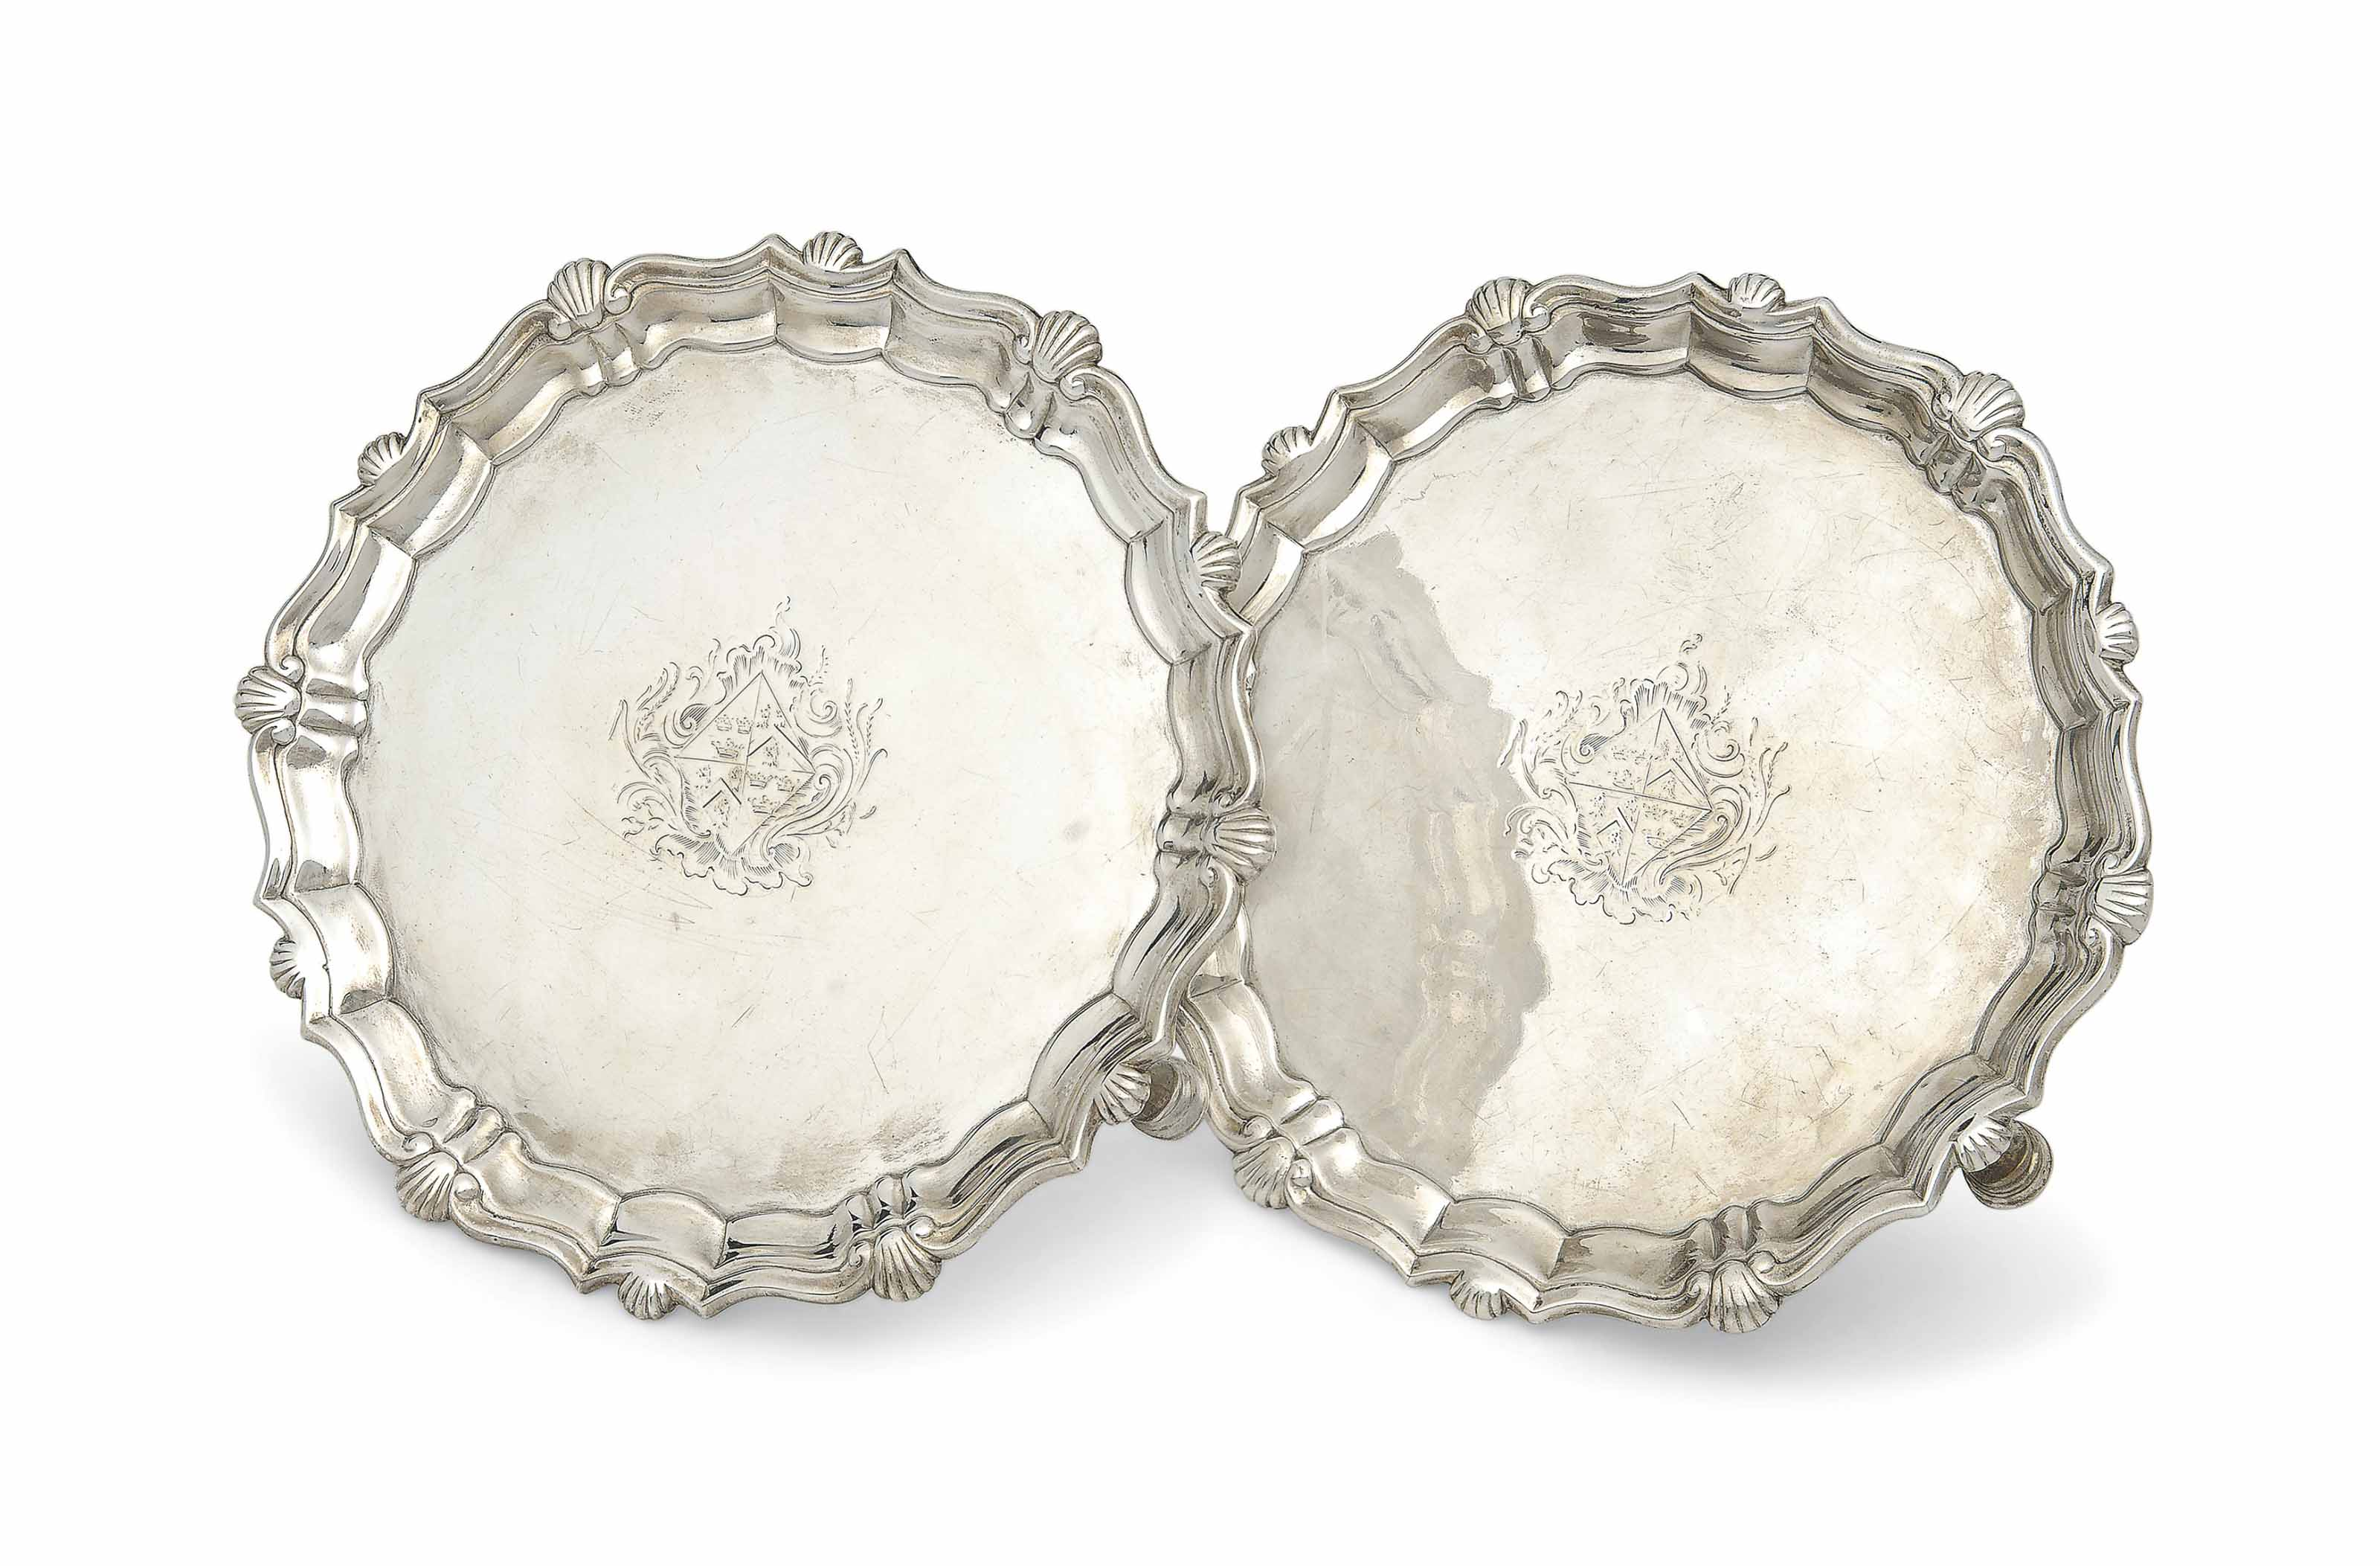 A PAIR OF SMALL GEORGE II SILVER SALVERS